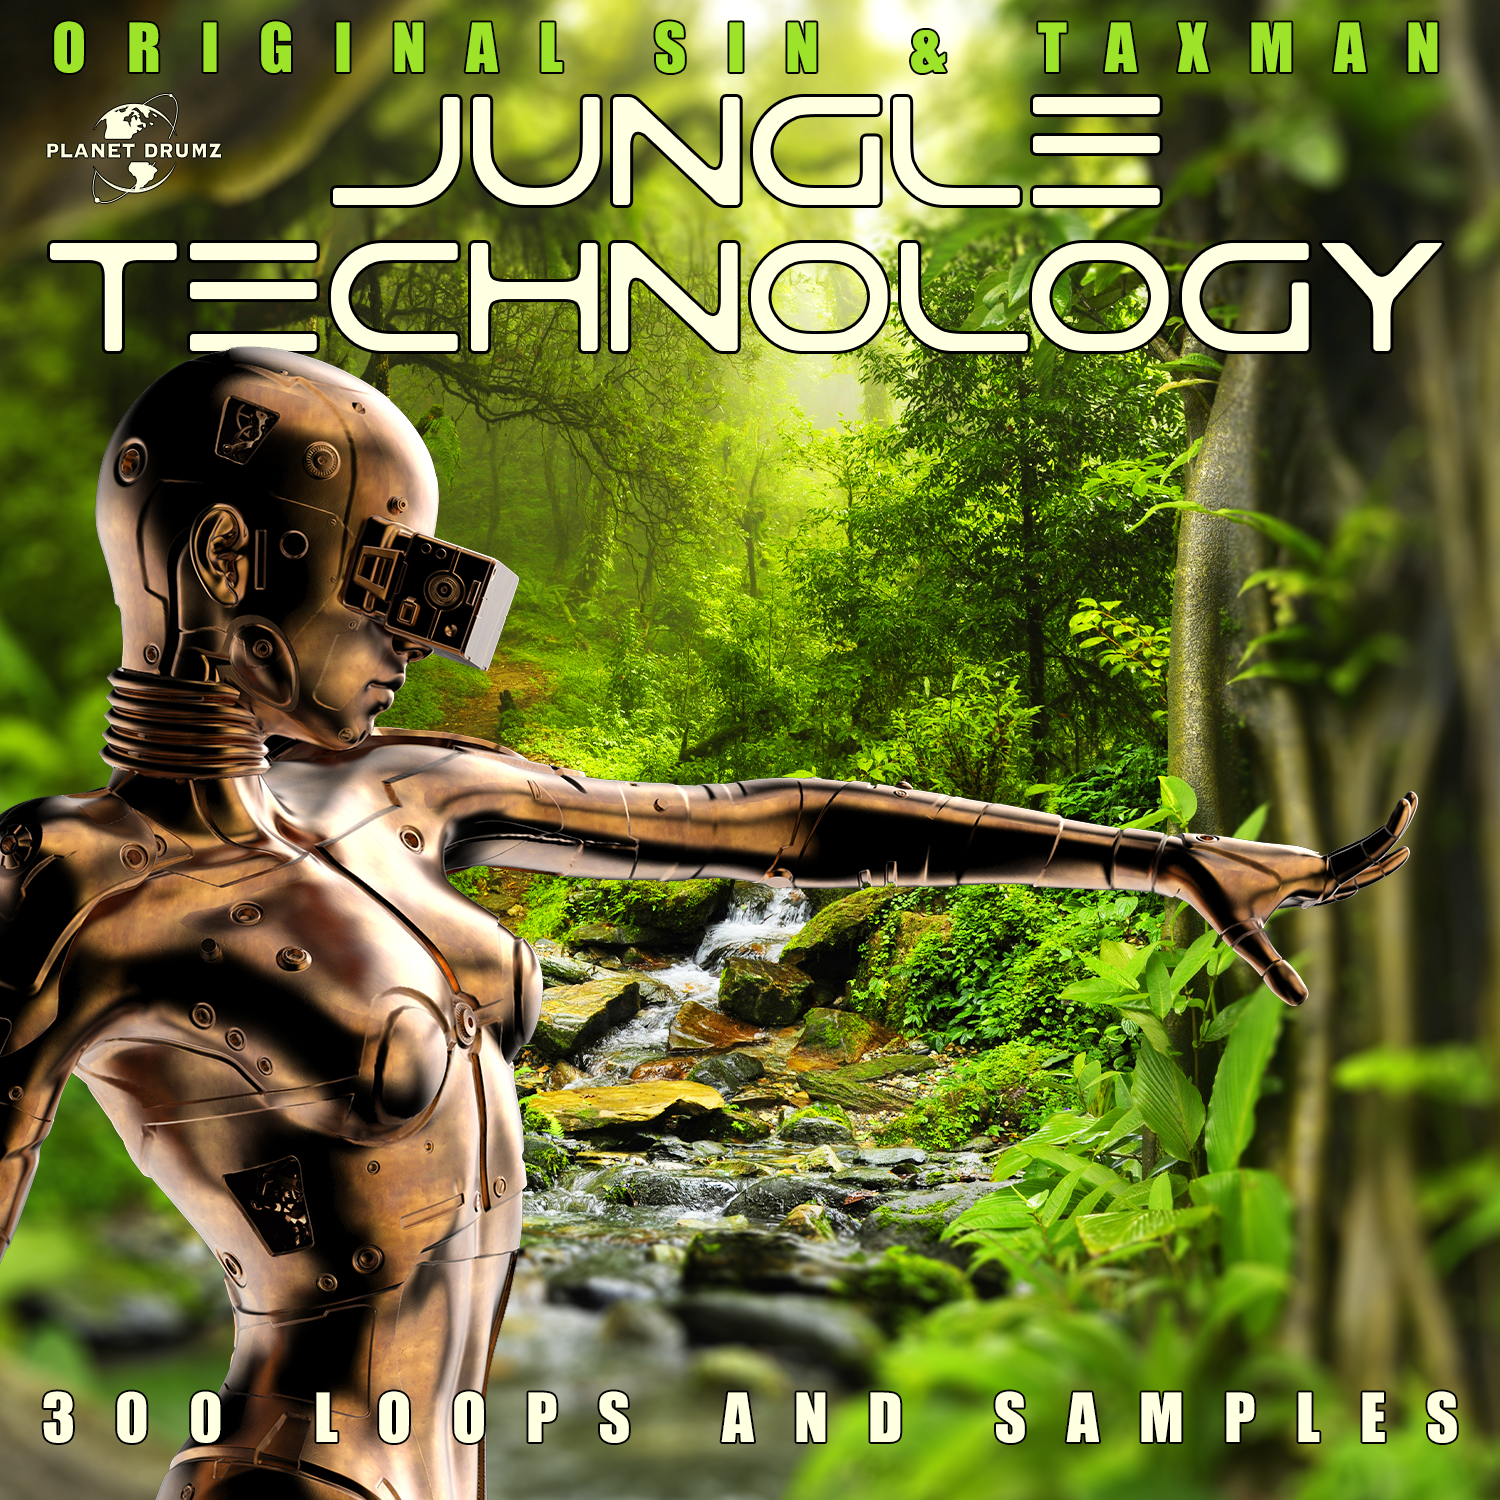 JUNGLE TECHNO COVER v3.png